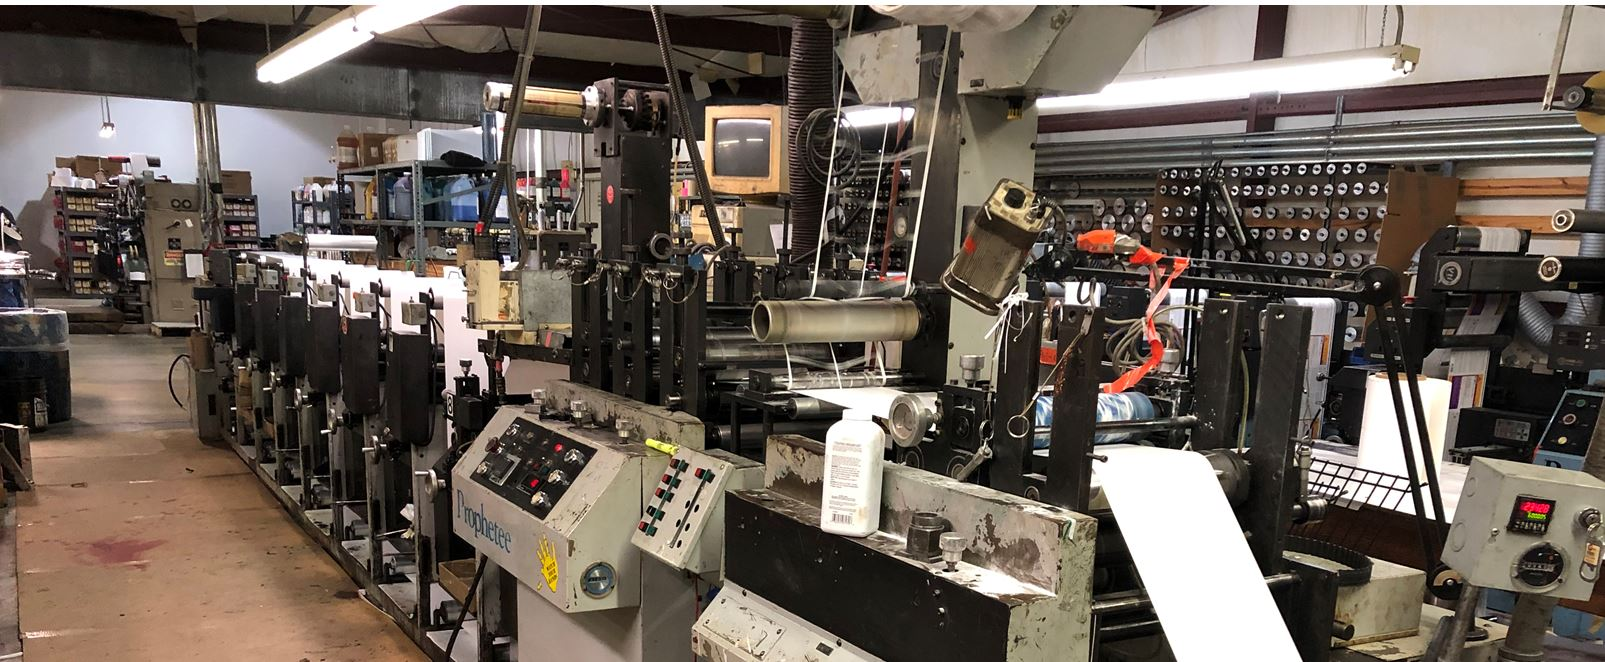 Propheteer - Used Flexo Printing Presses and Used Flexographic Equipment-0